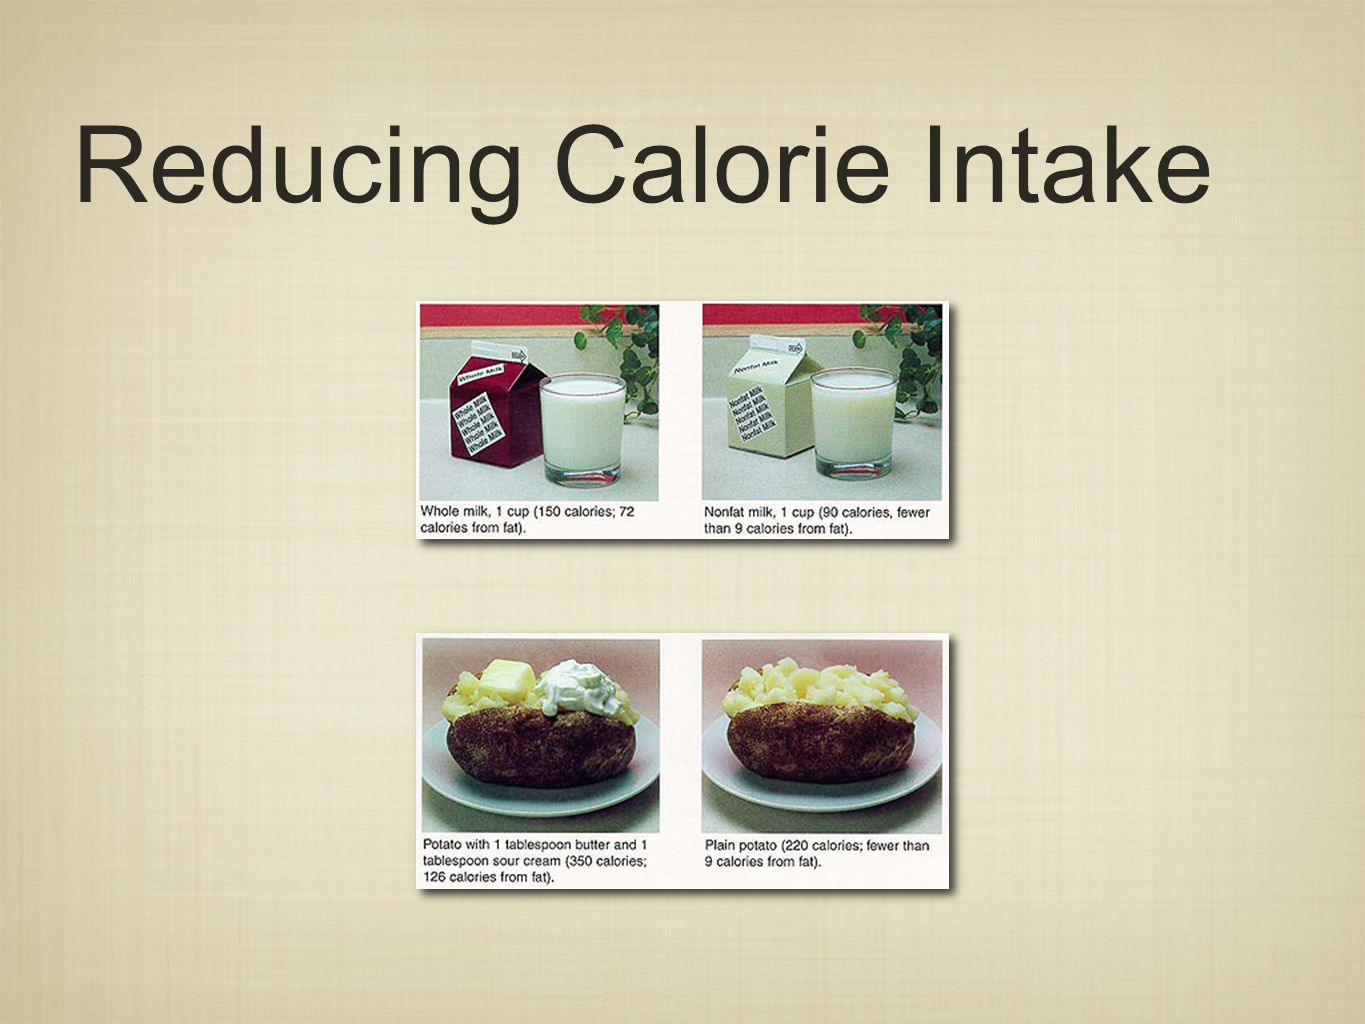 Reducing Calorie Intake